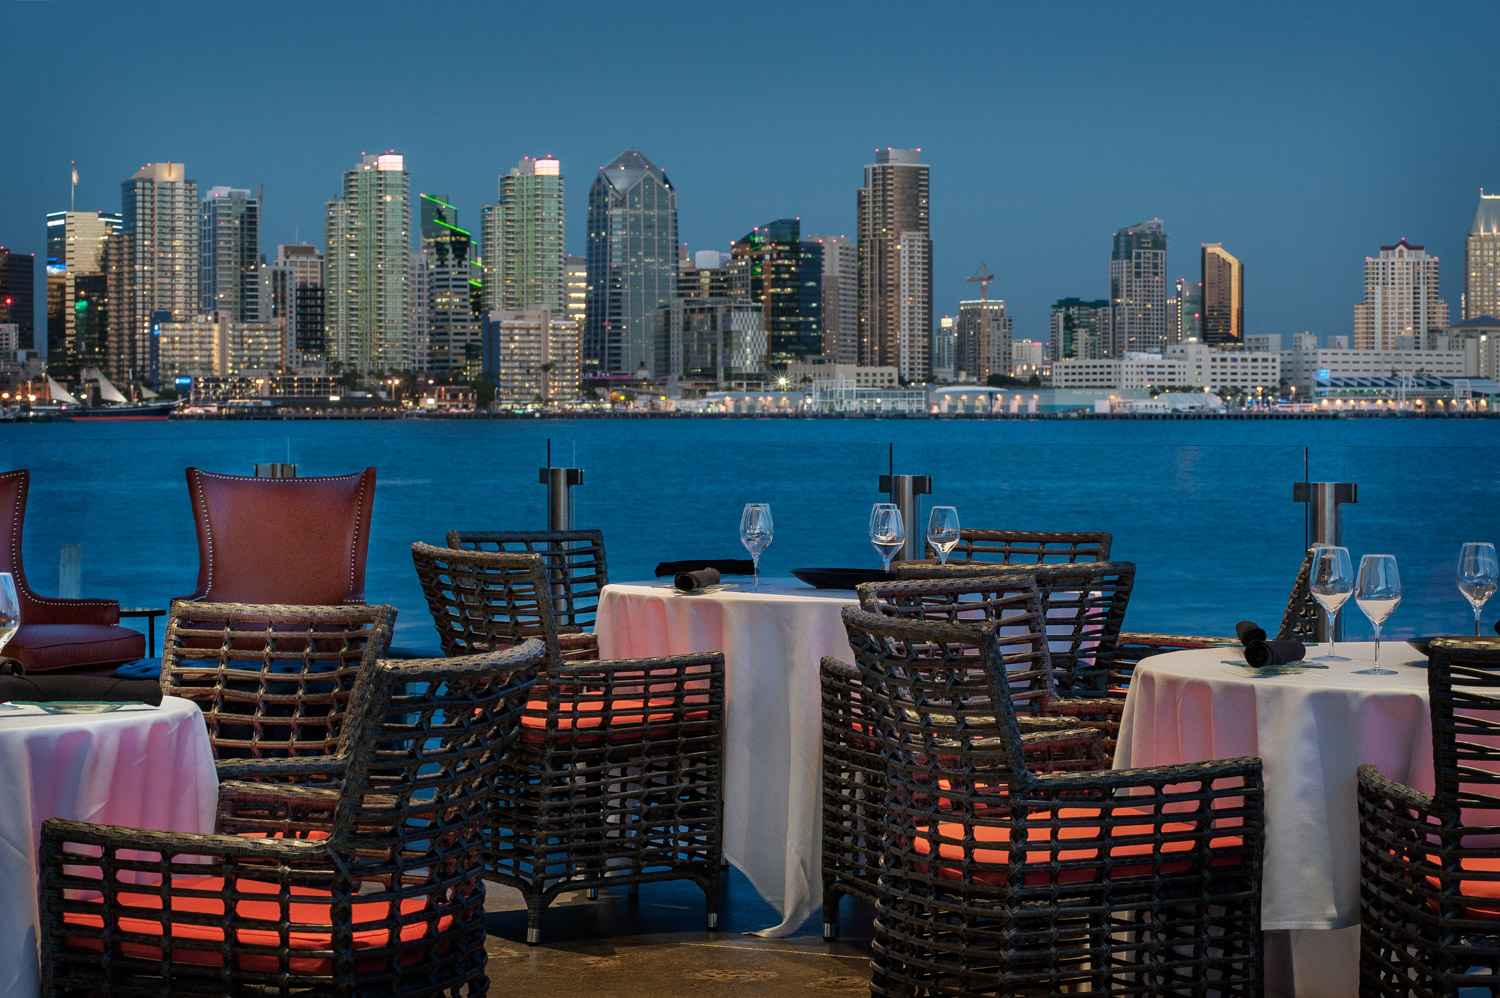 Sunset skyline of San Diego, Coasterra restaurant, bayfront restaurant